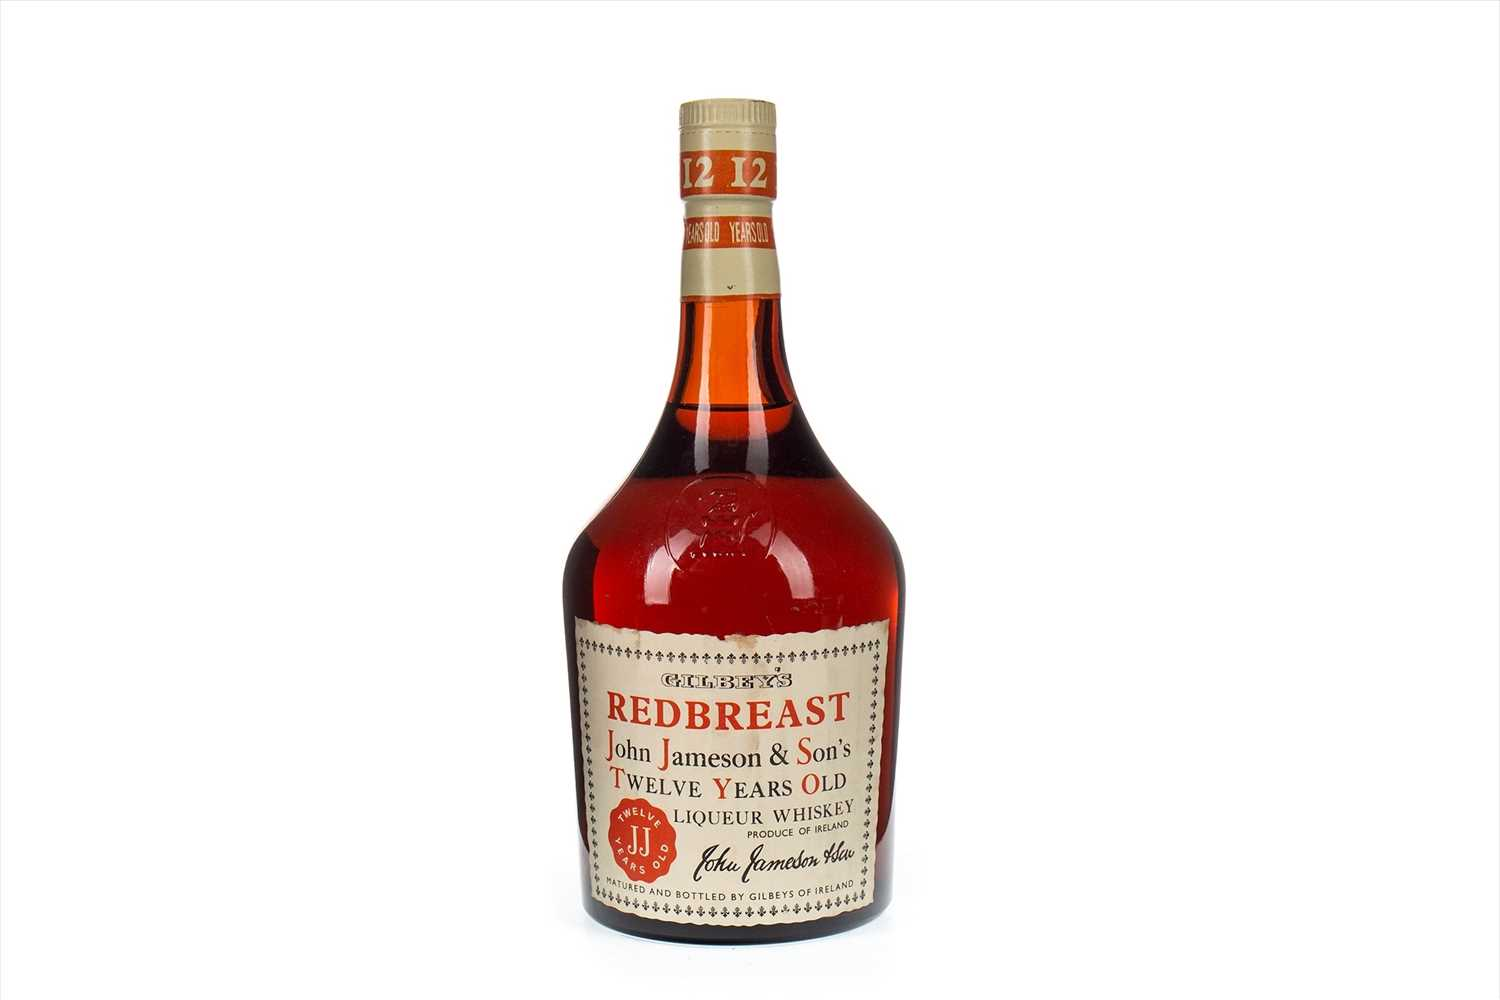 Lot 1-GILBEY'S REDBREAST LIQUEUR WHISKEY 12 YEARS OLD